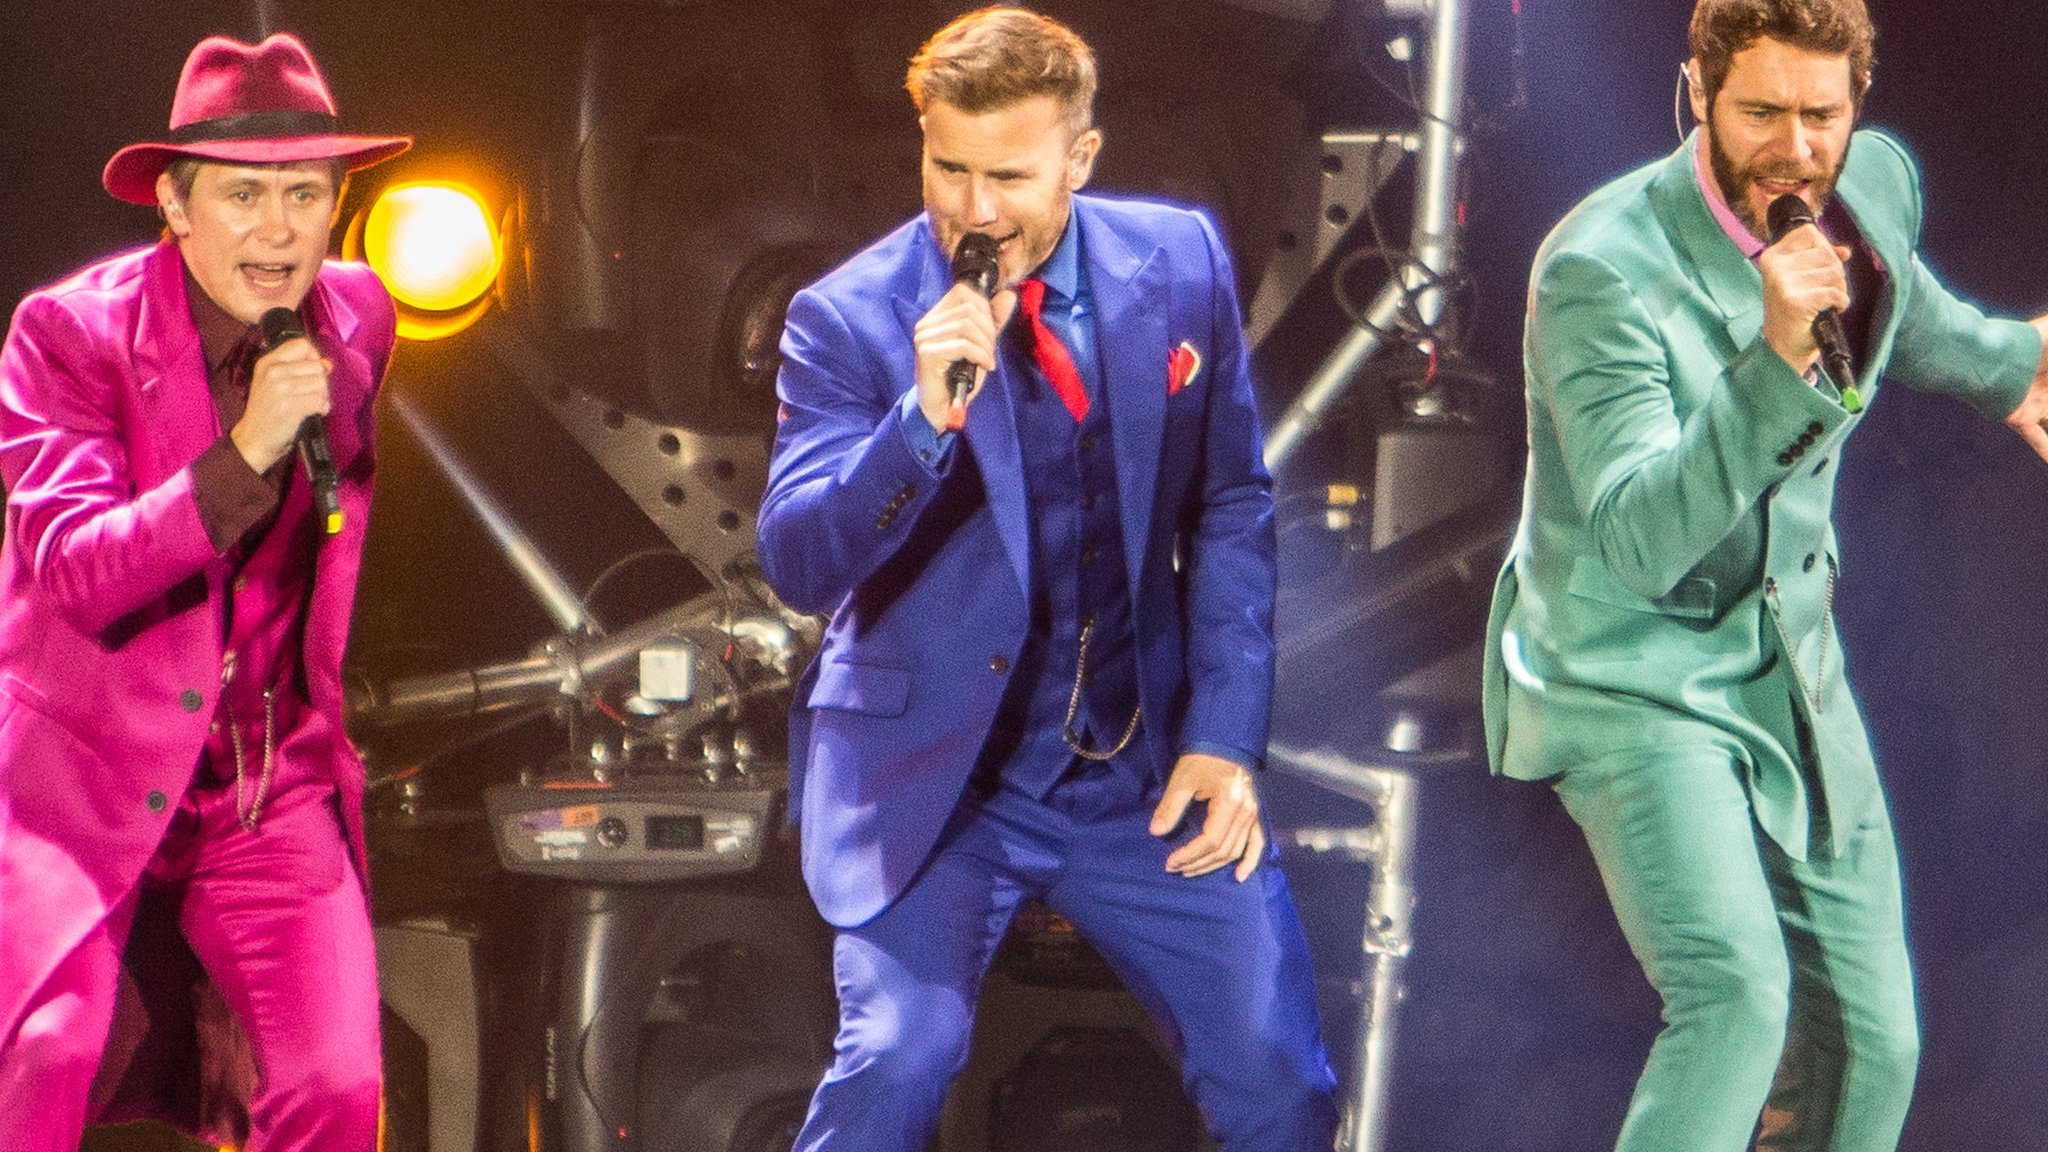 Without Take That we would not have survived - the realities of county cricket finances